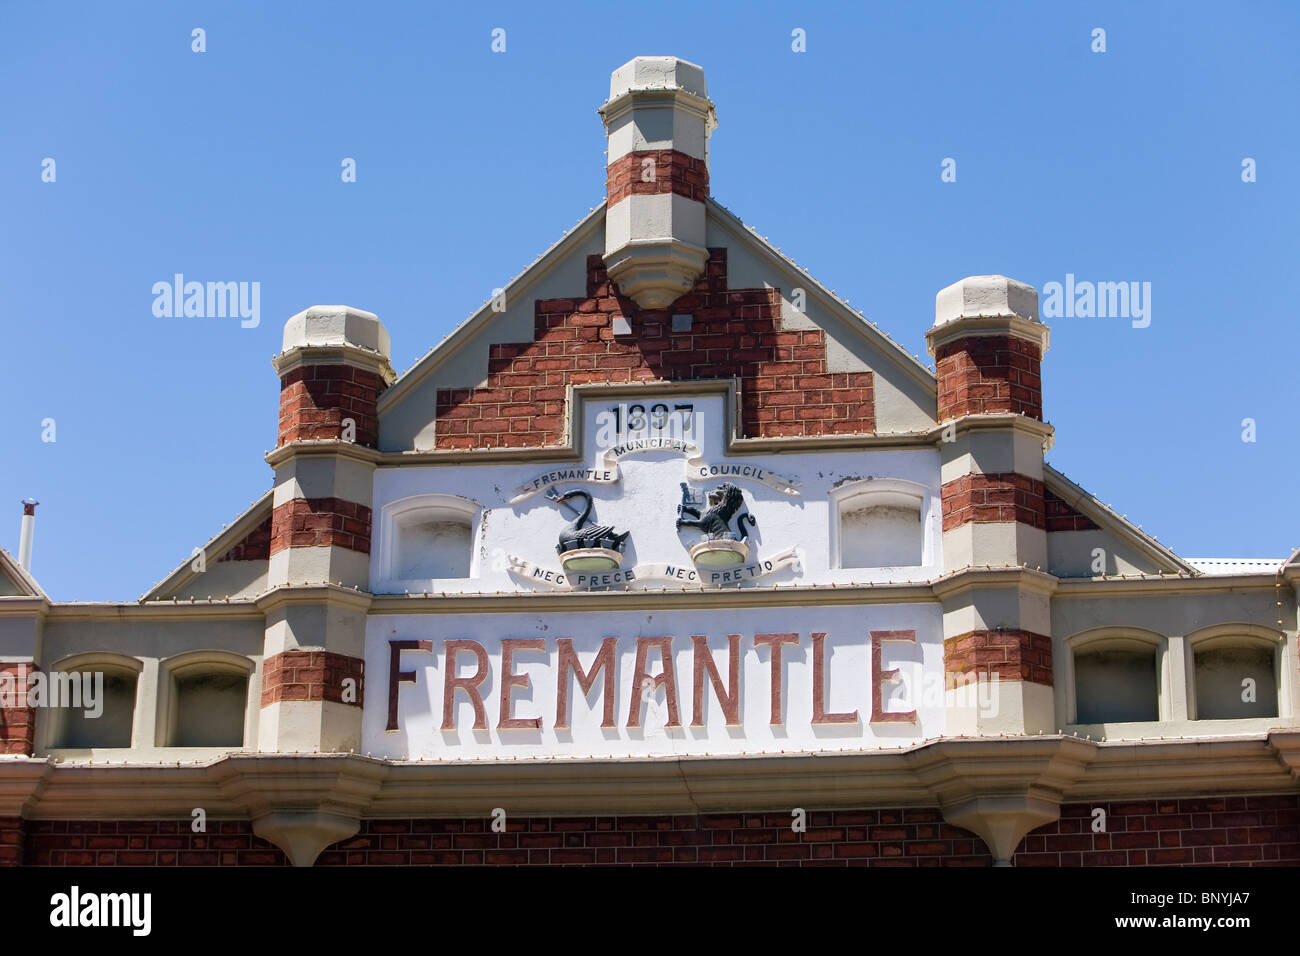 The historic Fremantle Markets, dating back to 1897. Fremantle, Western Australia, AUSTRALIA. - Stock Image